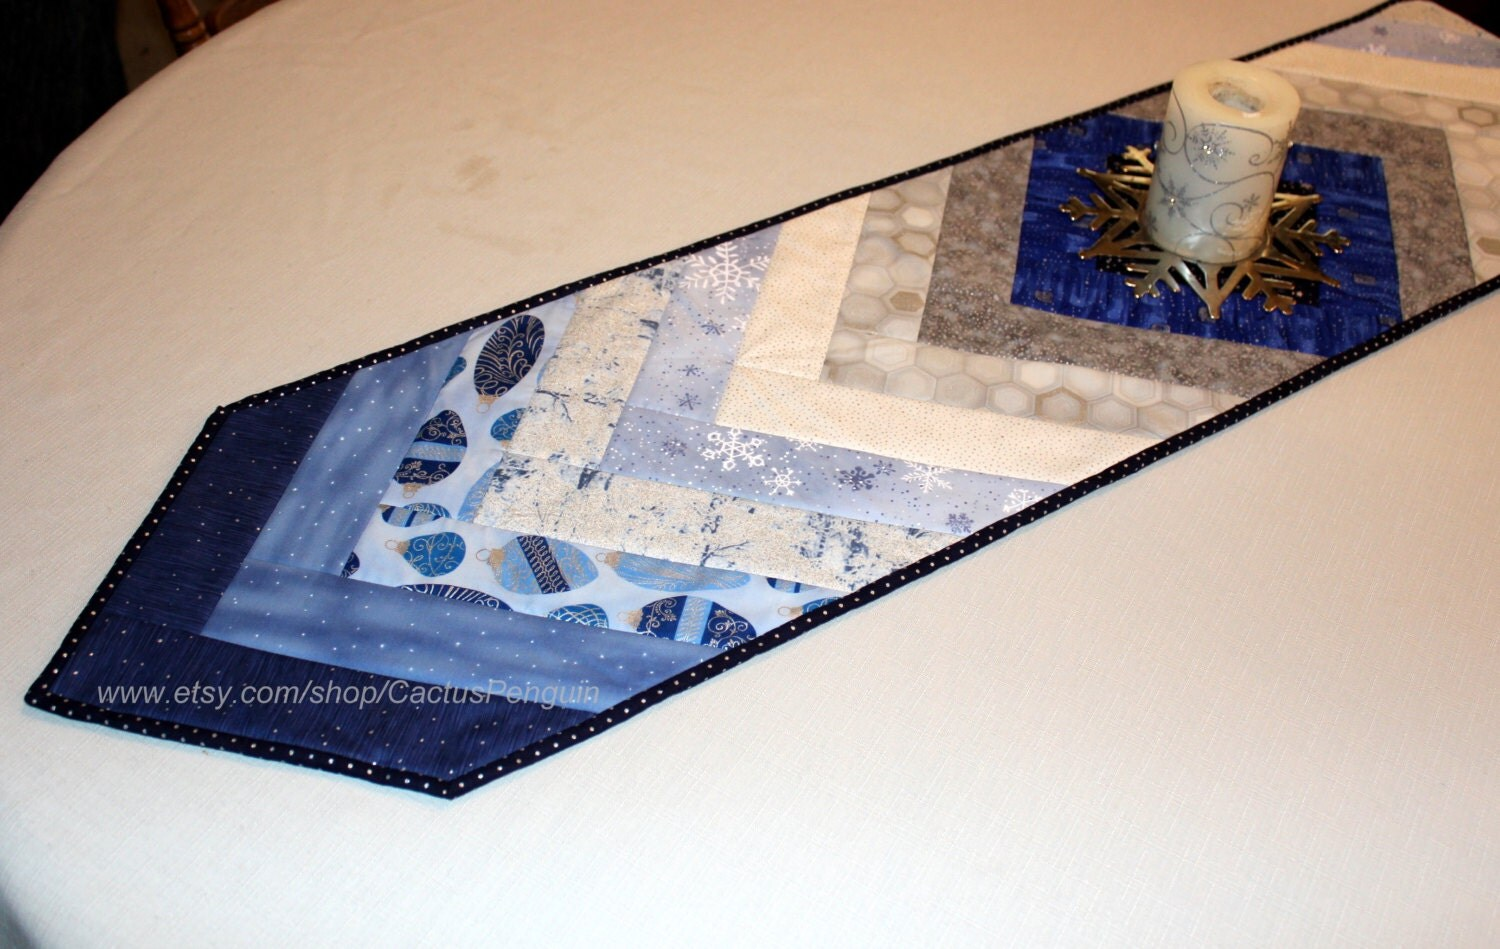 christmas quilted table runner blues and silver metallic. Black Bedroom Furniture Sets. Home Design Ideas